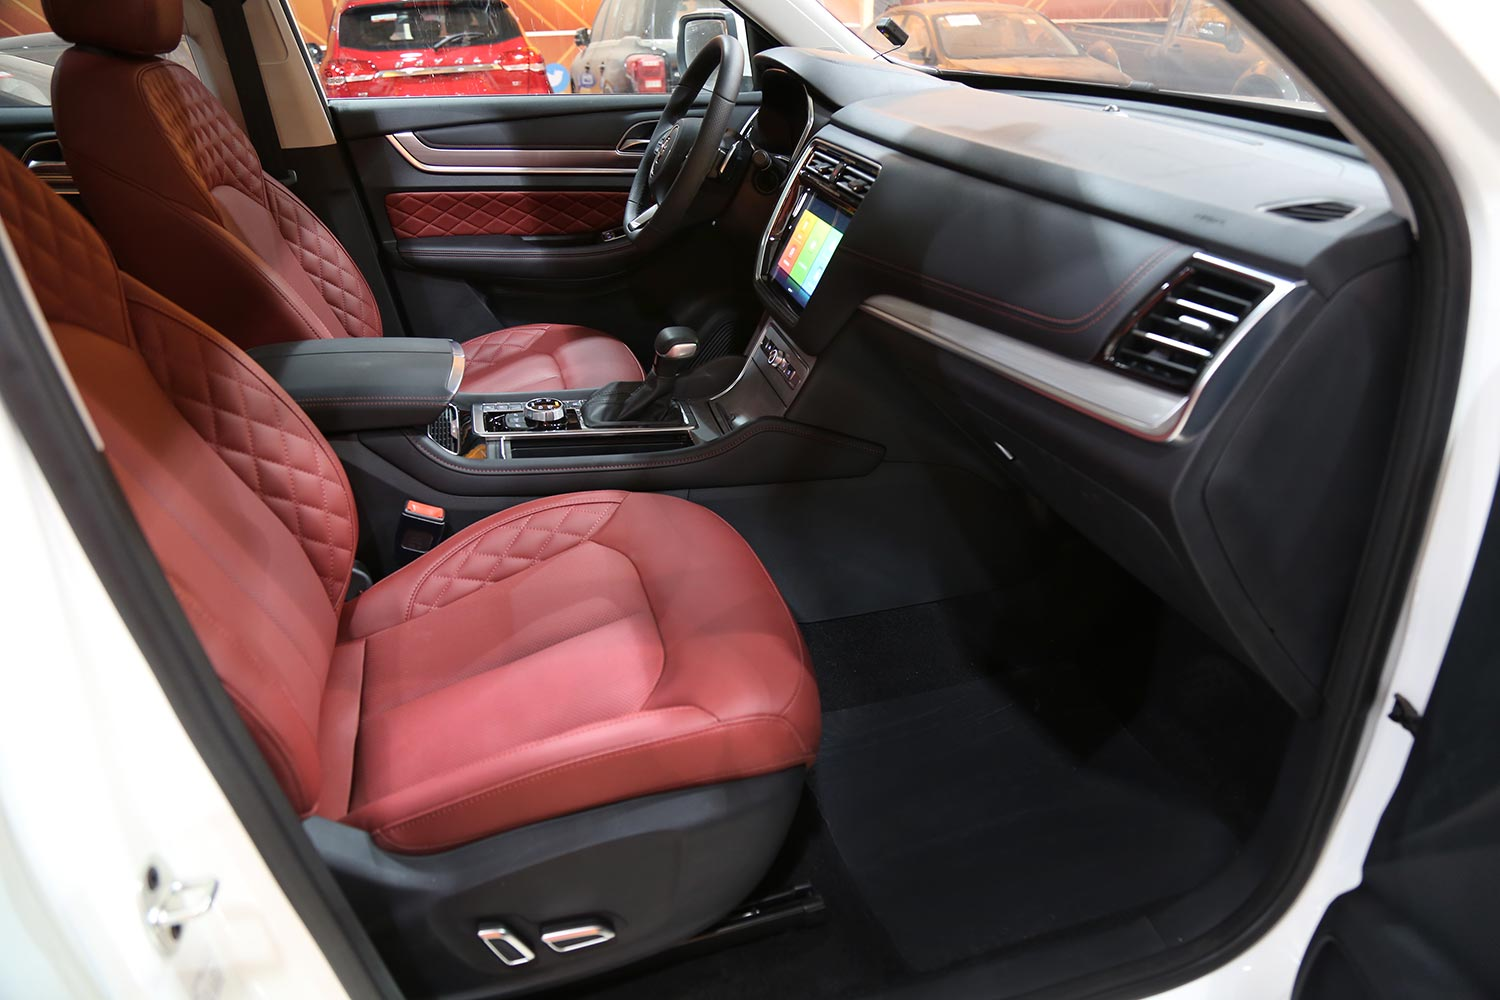 Interior Image for  MG RX8 LUX 2021